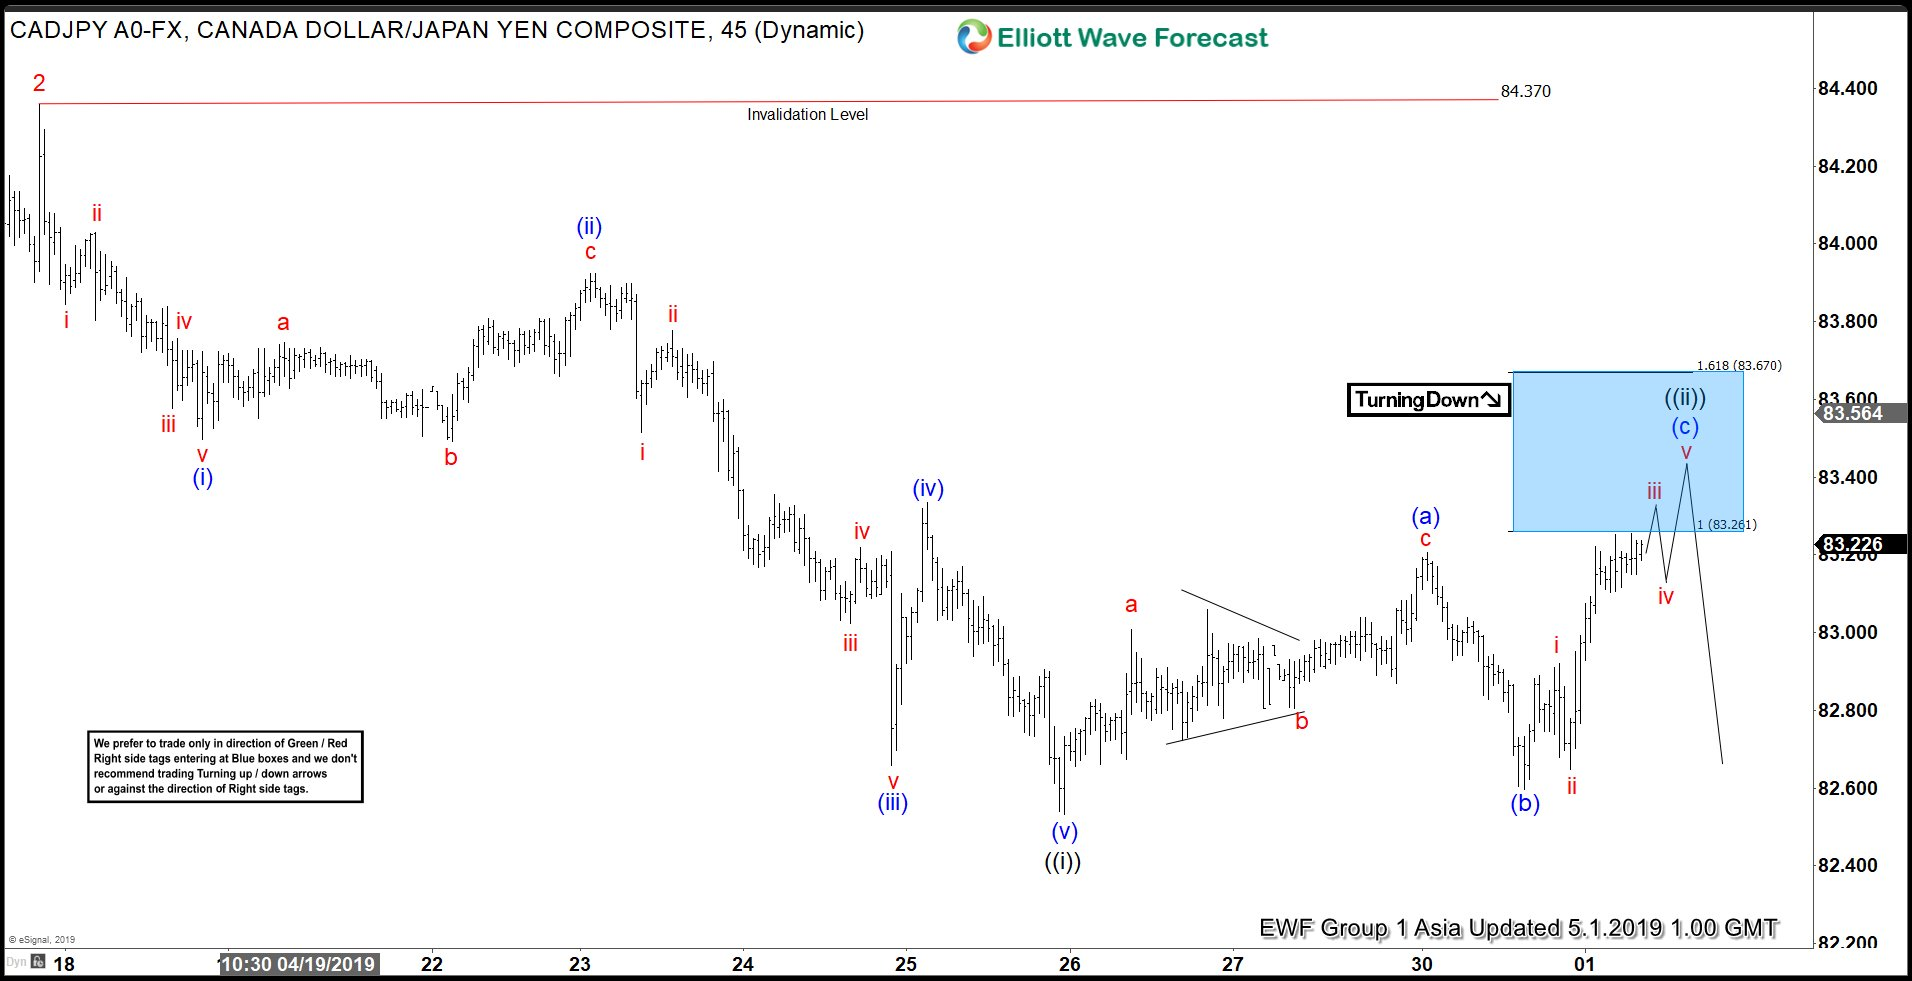 Elliot Wave View: Impulsive Decline in CADJPY